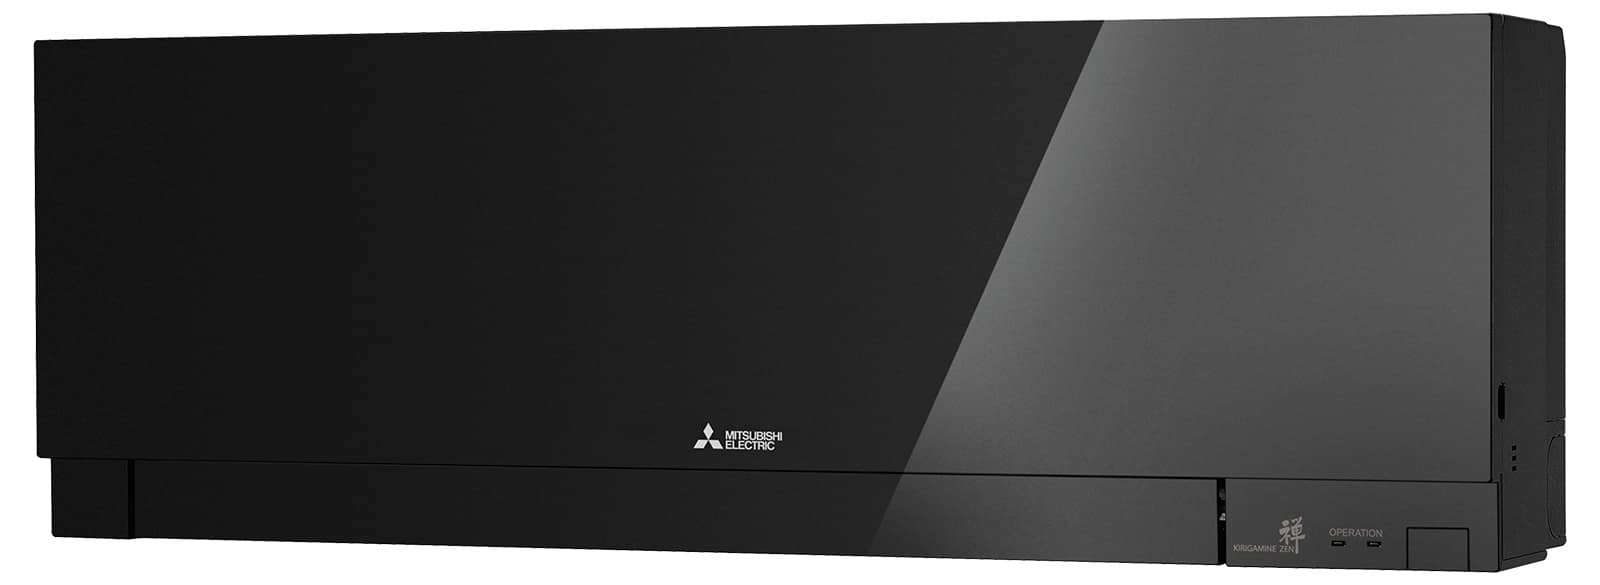 Внутренний блок Mitsubishi Electric MSZ-EF22VEB(black)